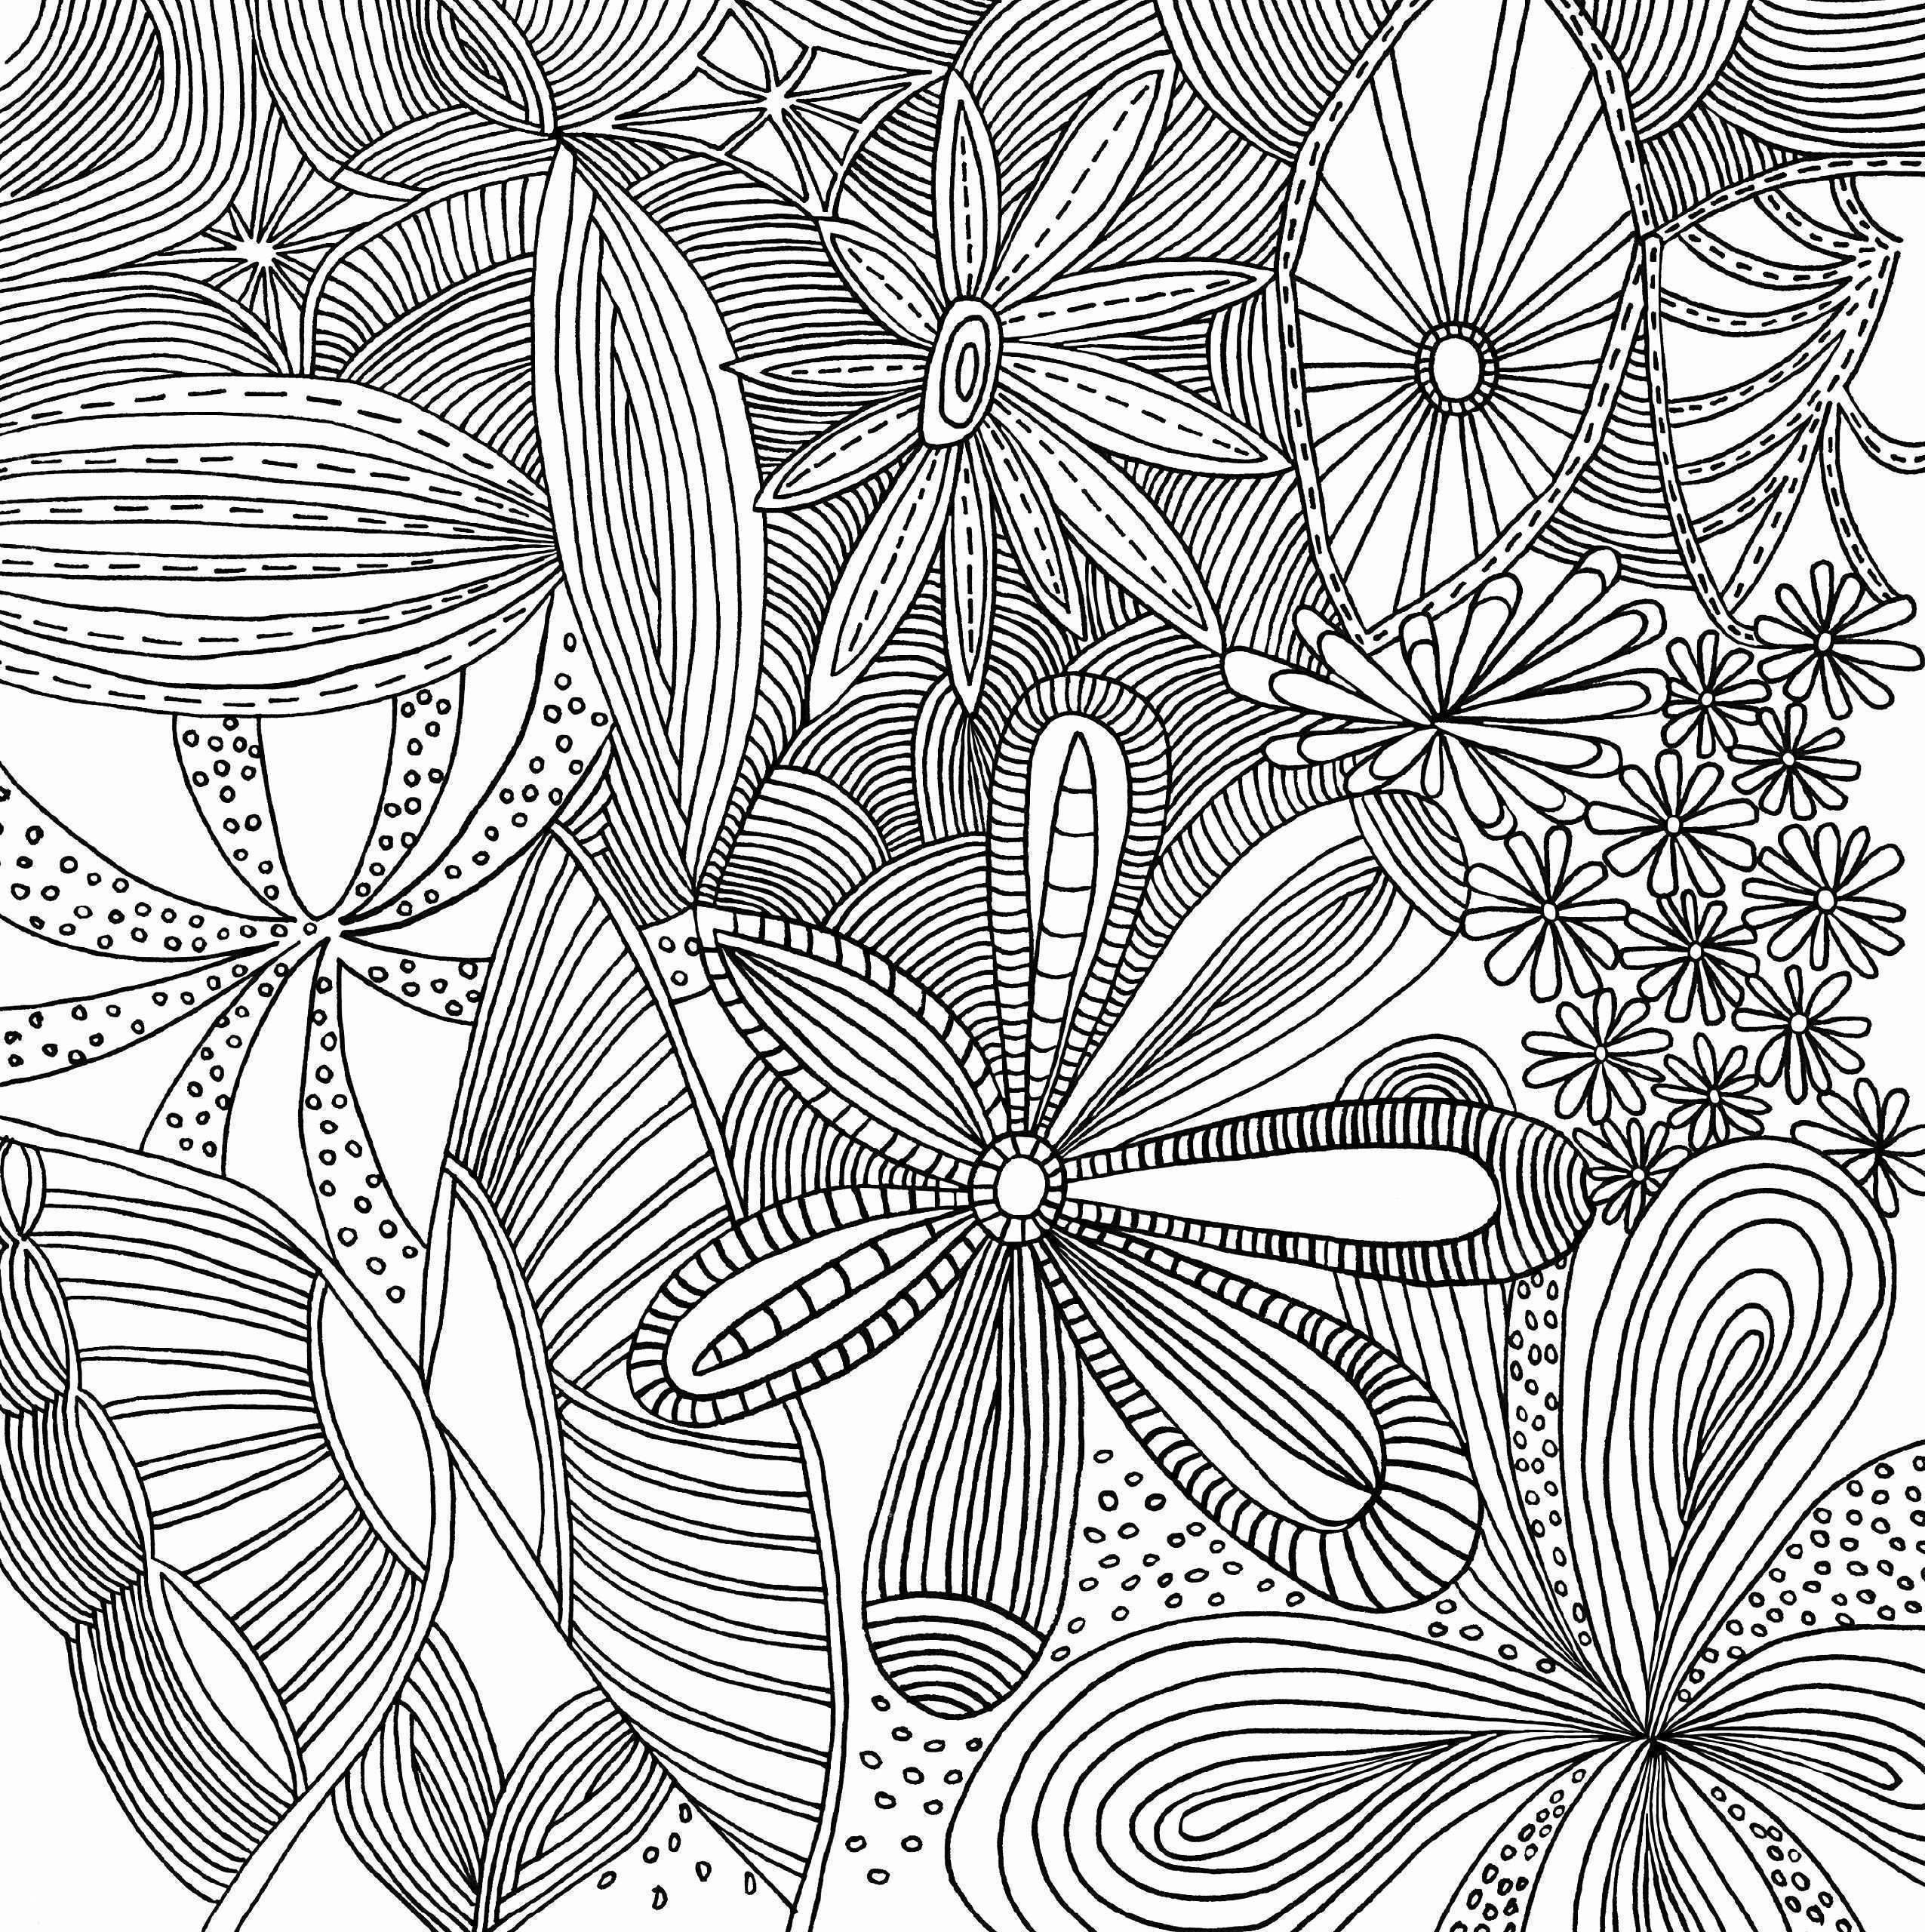 Coloring Printing Pages Elegant Coloring Pages Inspirational Crayola